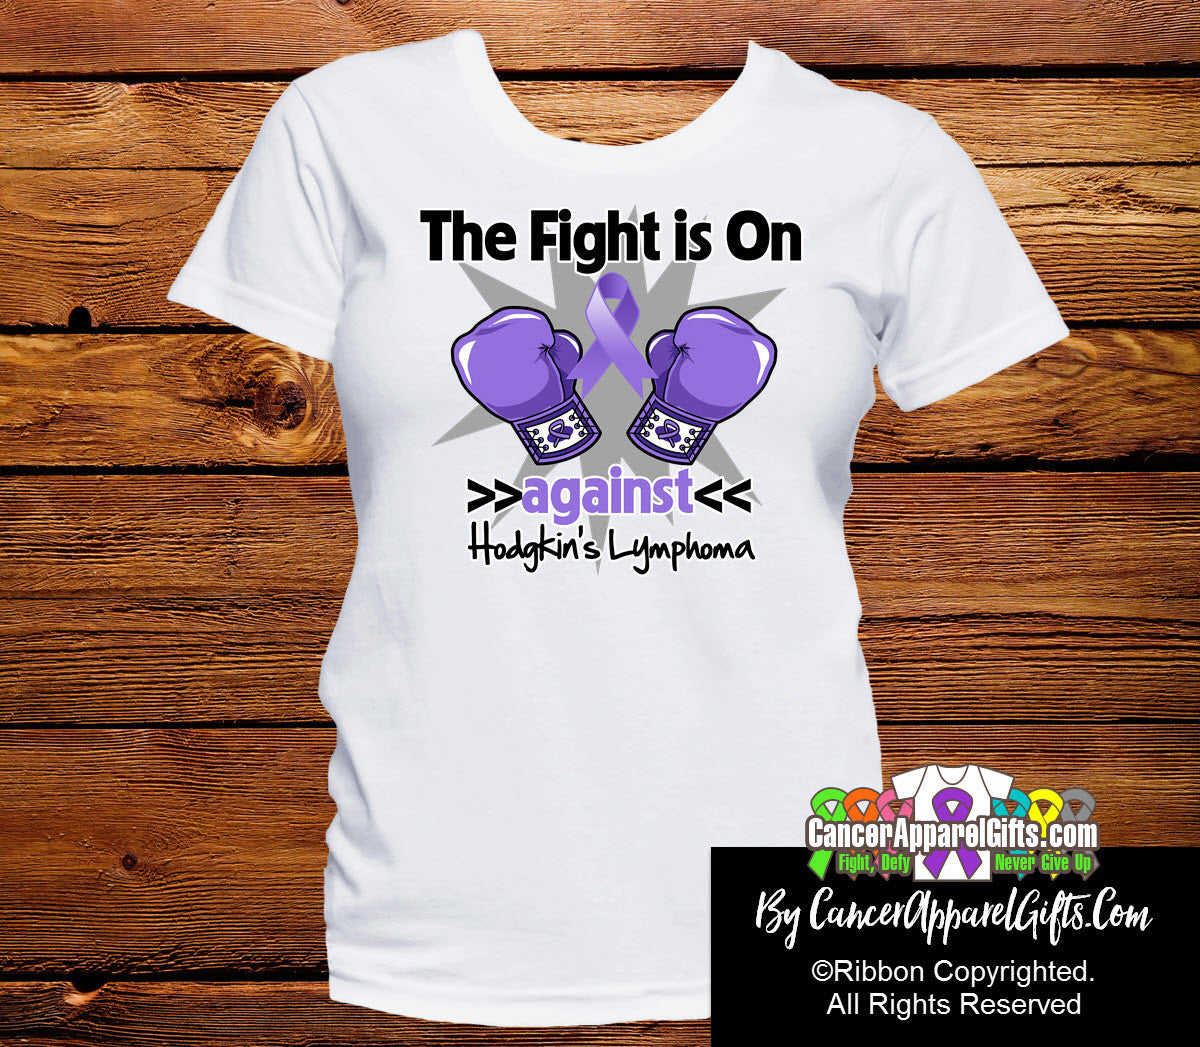 Hodgkins Lymphoma The Fight is On Ladies Shirts